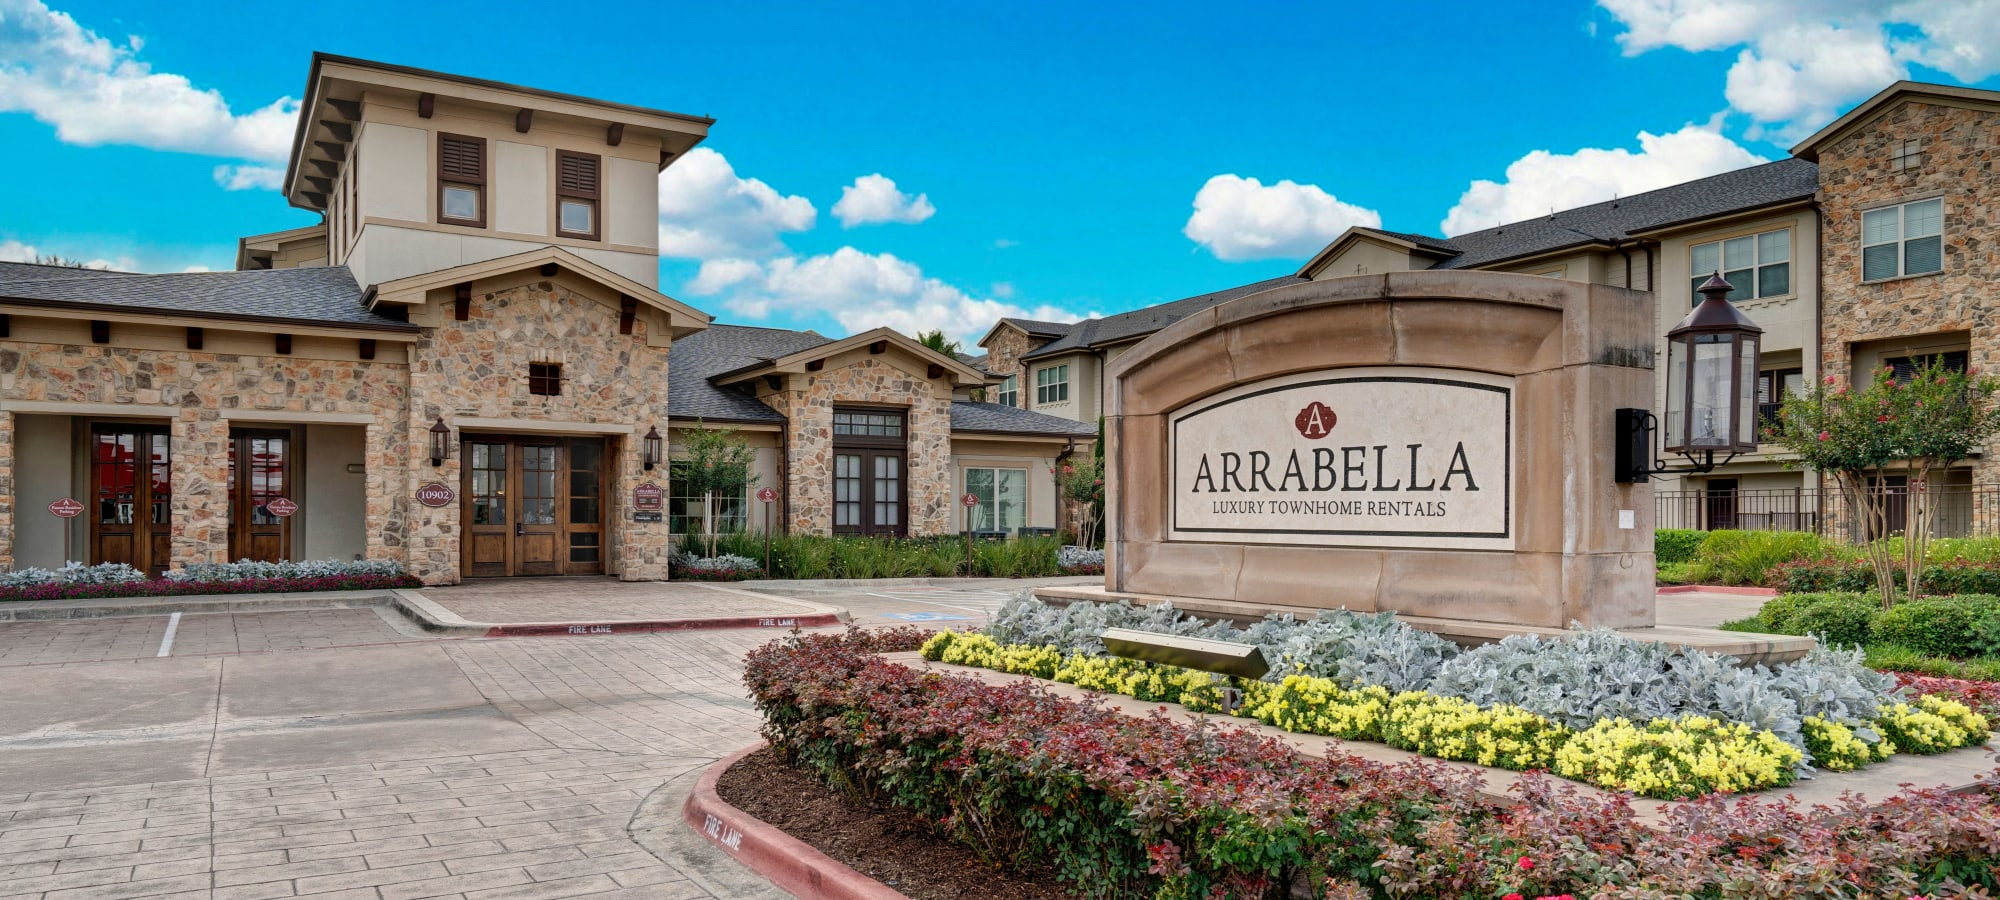 Luxury Apartments In Northwest Houston Tx Arrabella,Keeping Up With The Joneses Full Movie